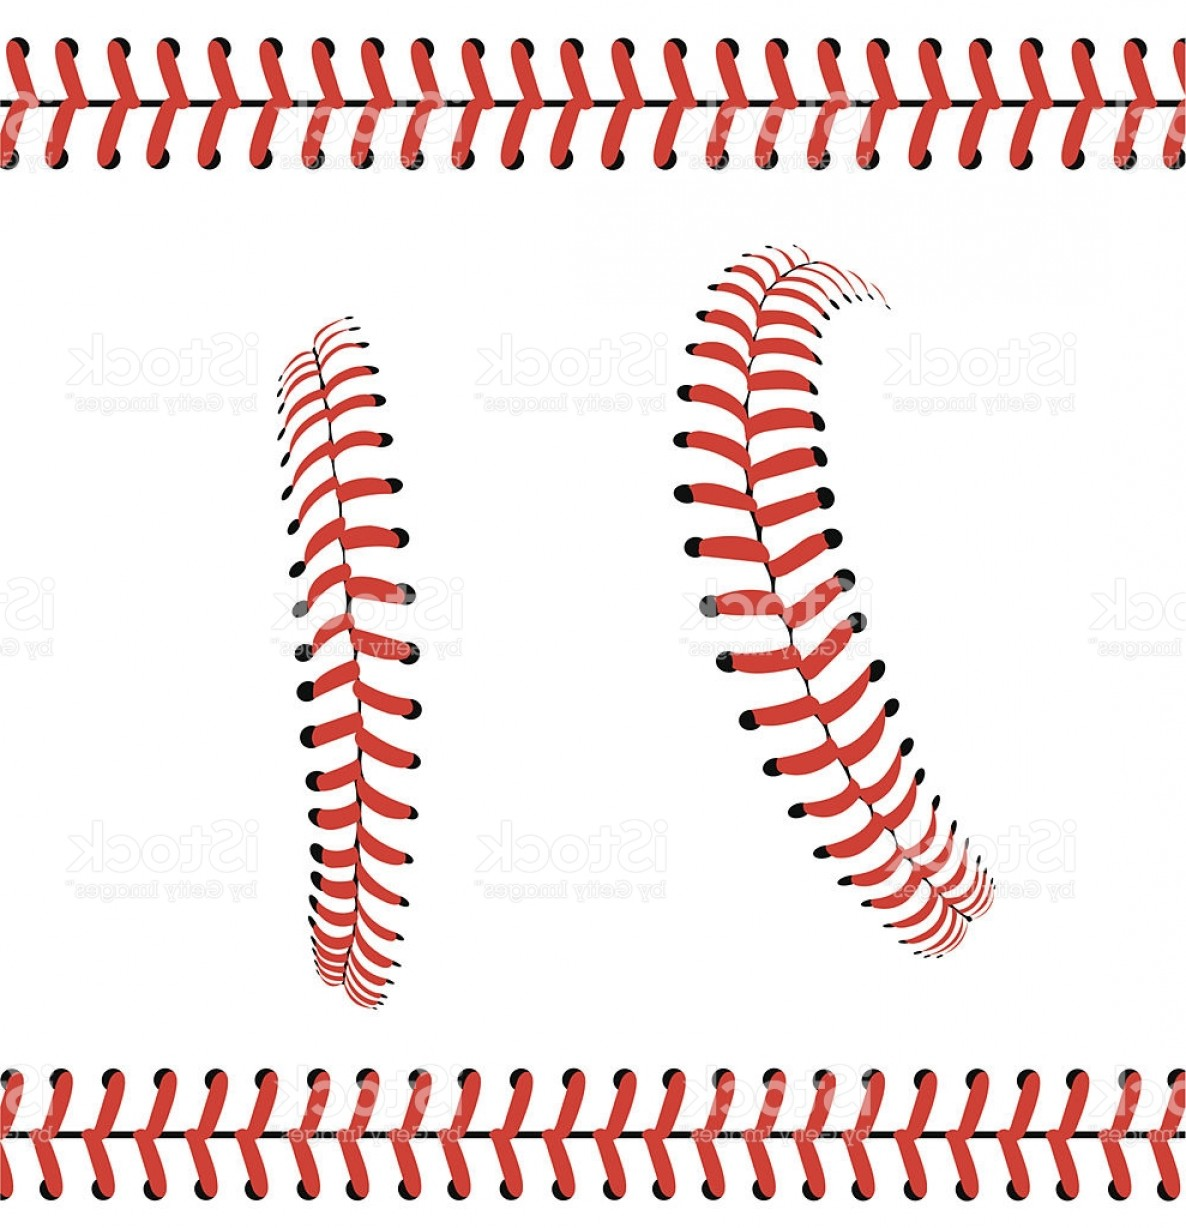 Softball Laces Vector Art B W: Baseball Stitches Or Laces Graphic Pattern Gm